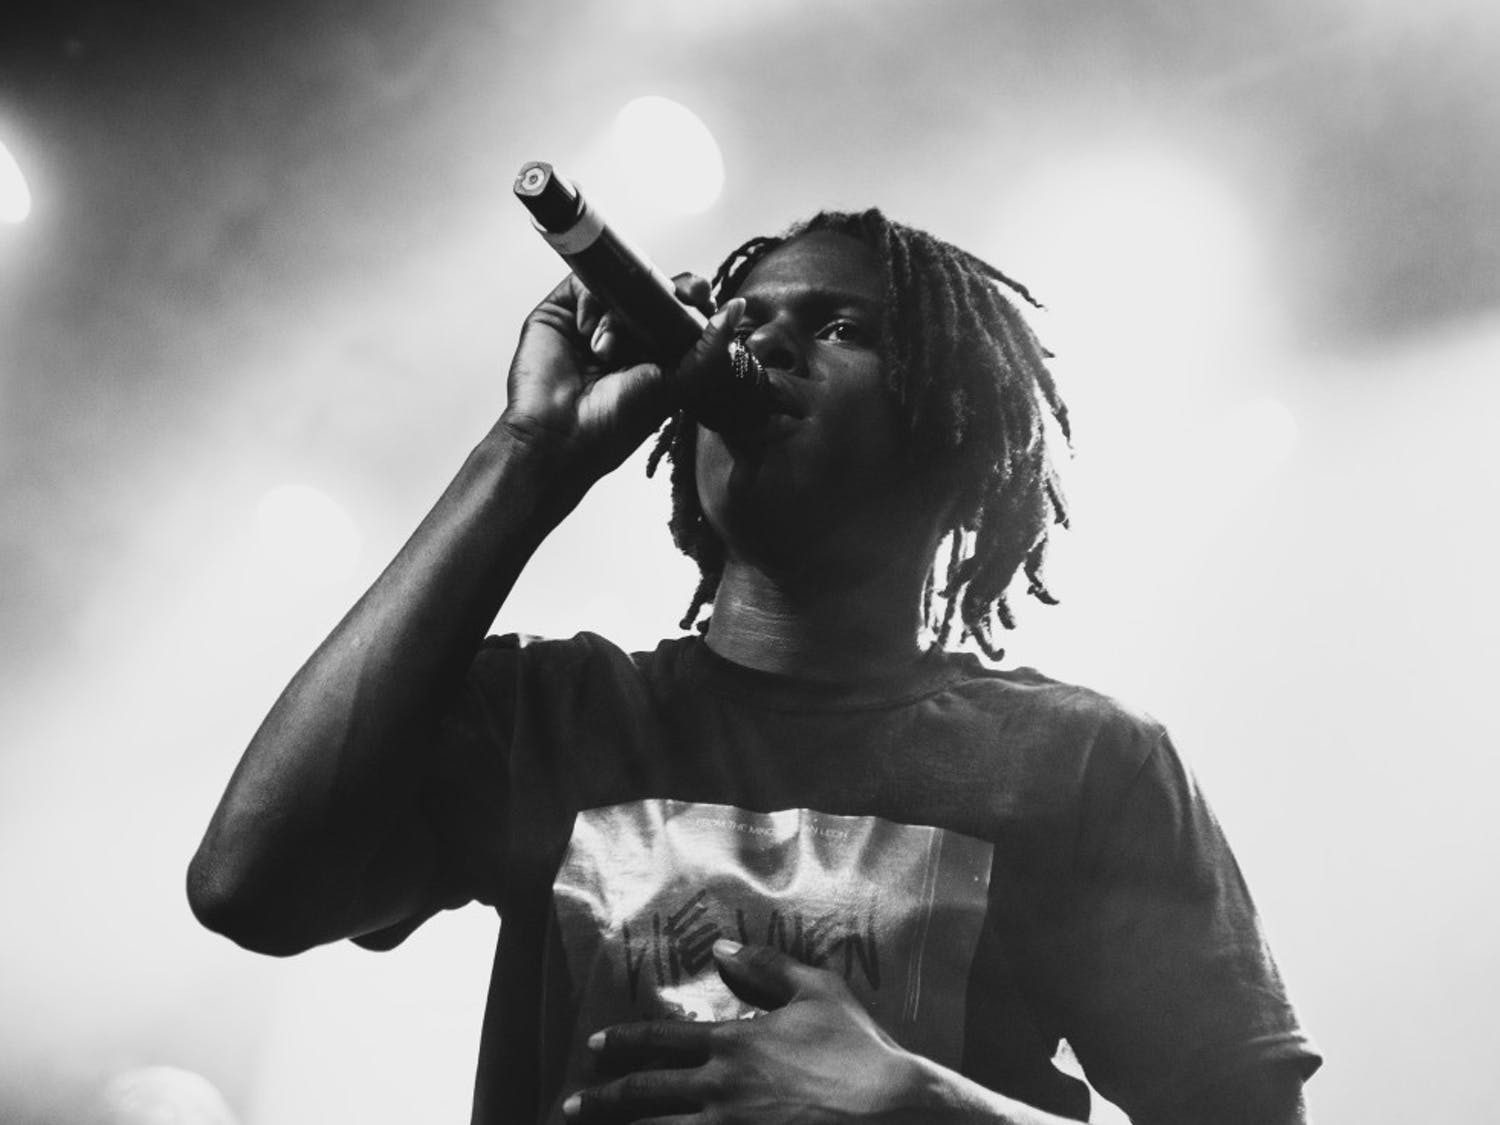 R&B singer Daniel Caesar will open SA's Spring Fest on May 5. SA will announce headliners on Thursday and Friday.